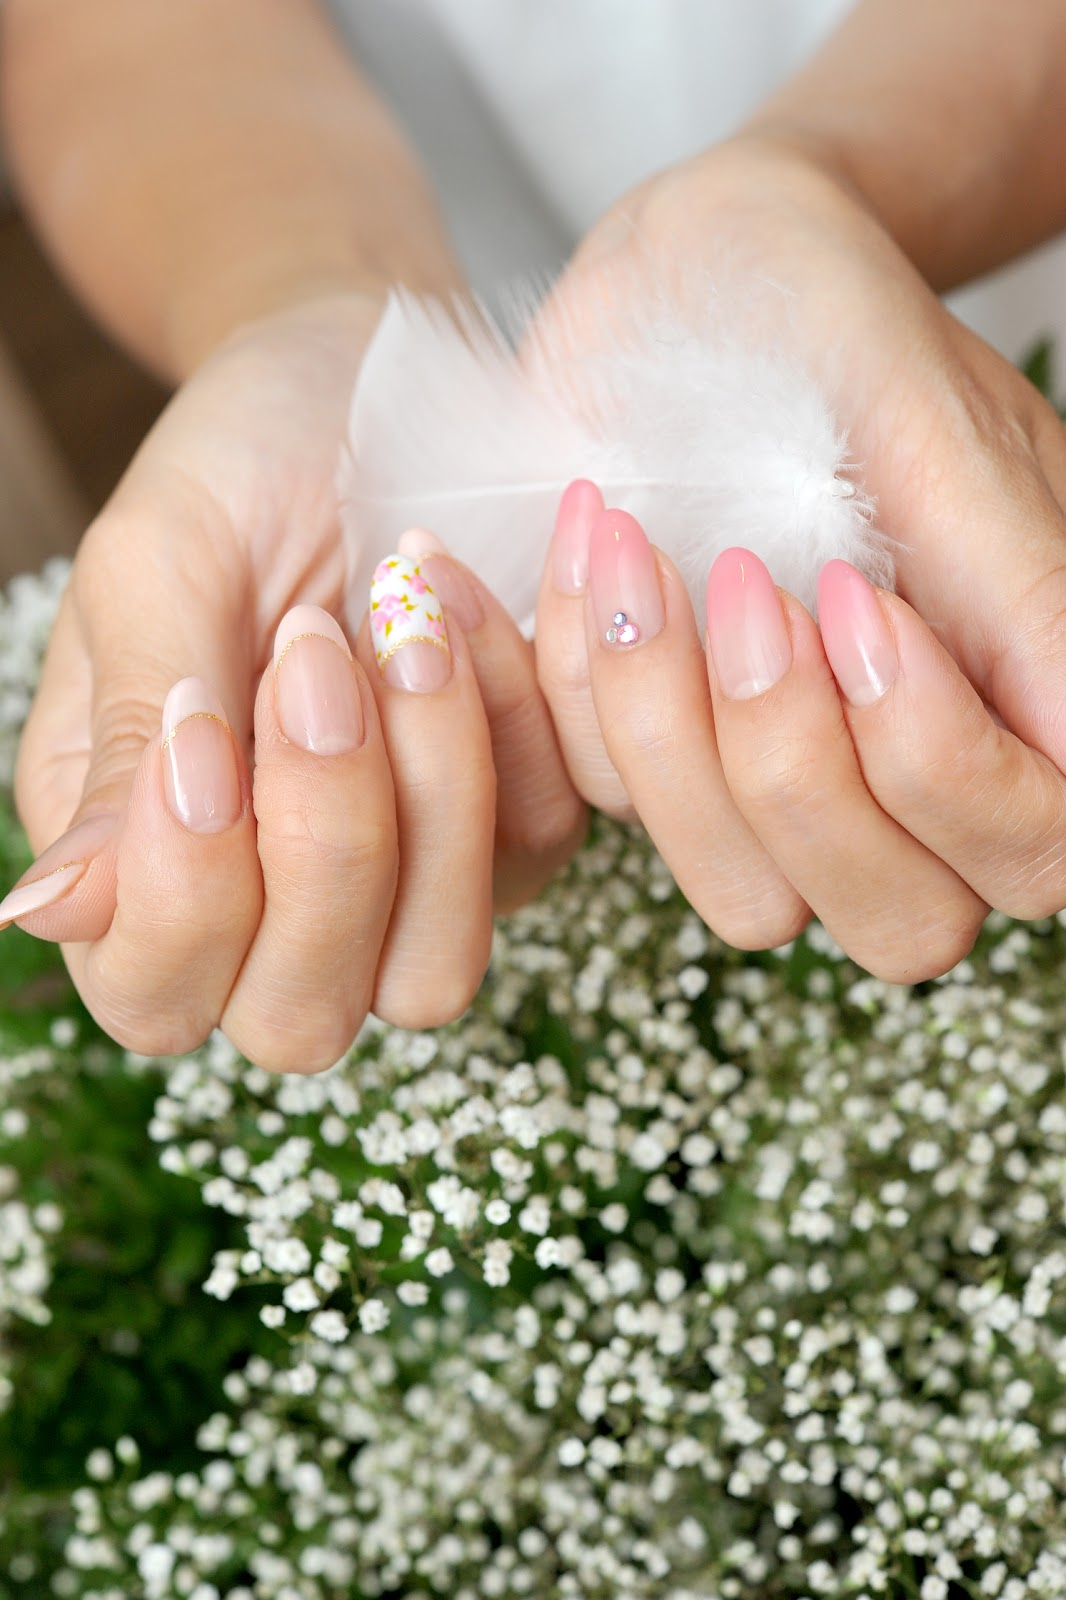 Neu Events' Blog For The Knot's Hawaii Site: To Do: Mani